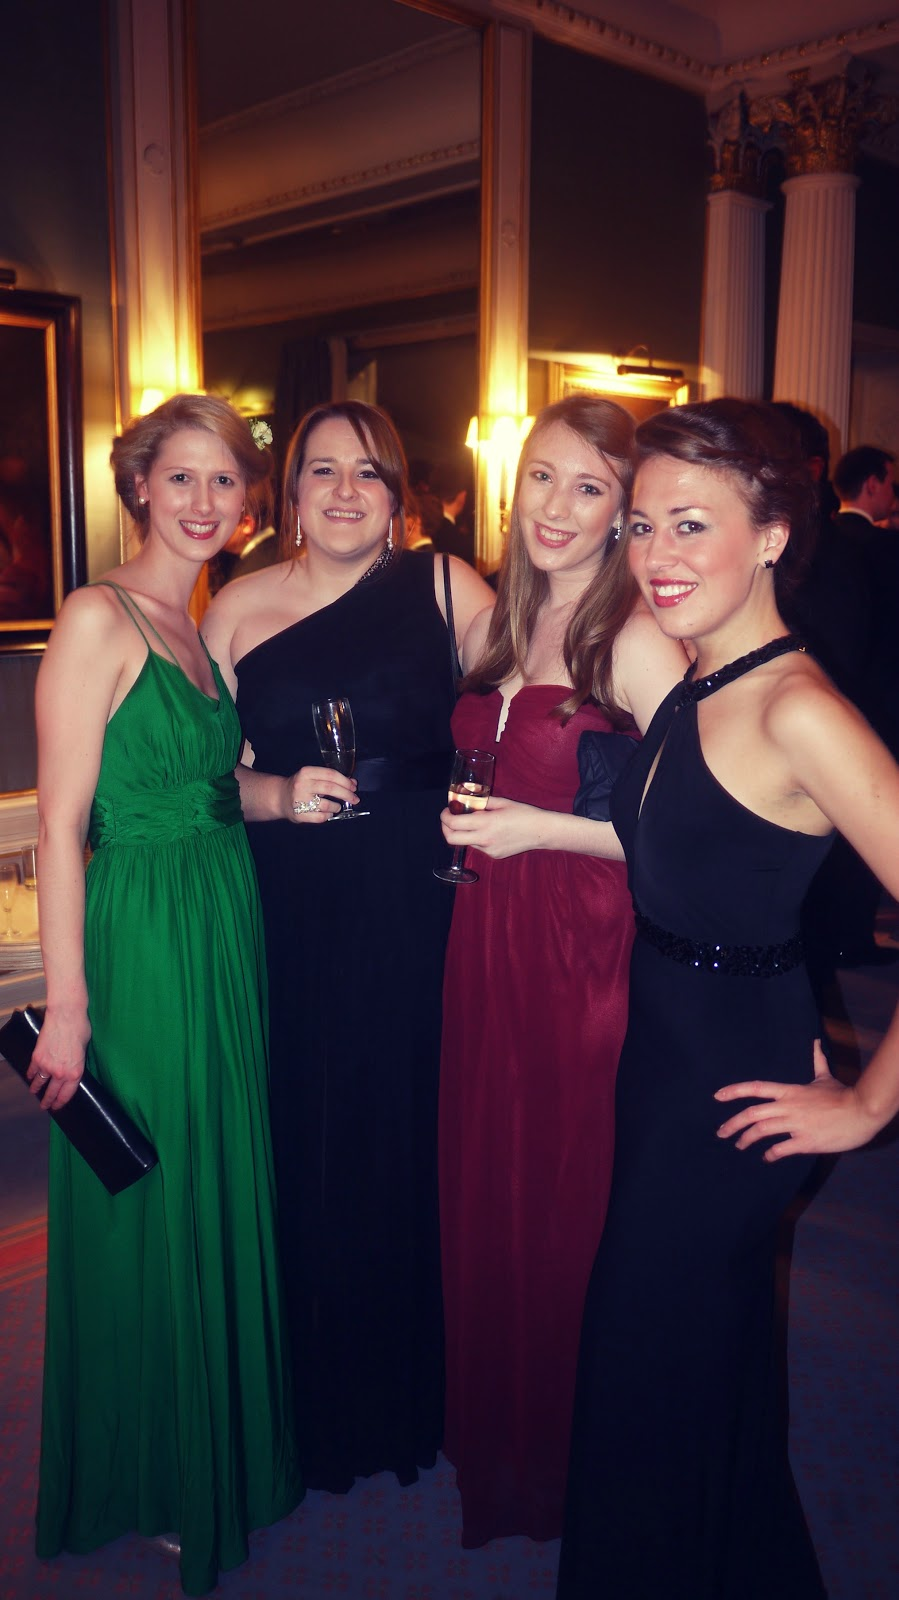 Christmas dress code - I Wore A Burgundy Dress That Was Actually My Bridesmaid Dress For My Besties Wedding Back In March I Thought The Colour Was Very Festive